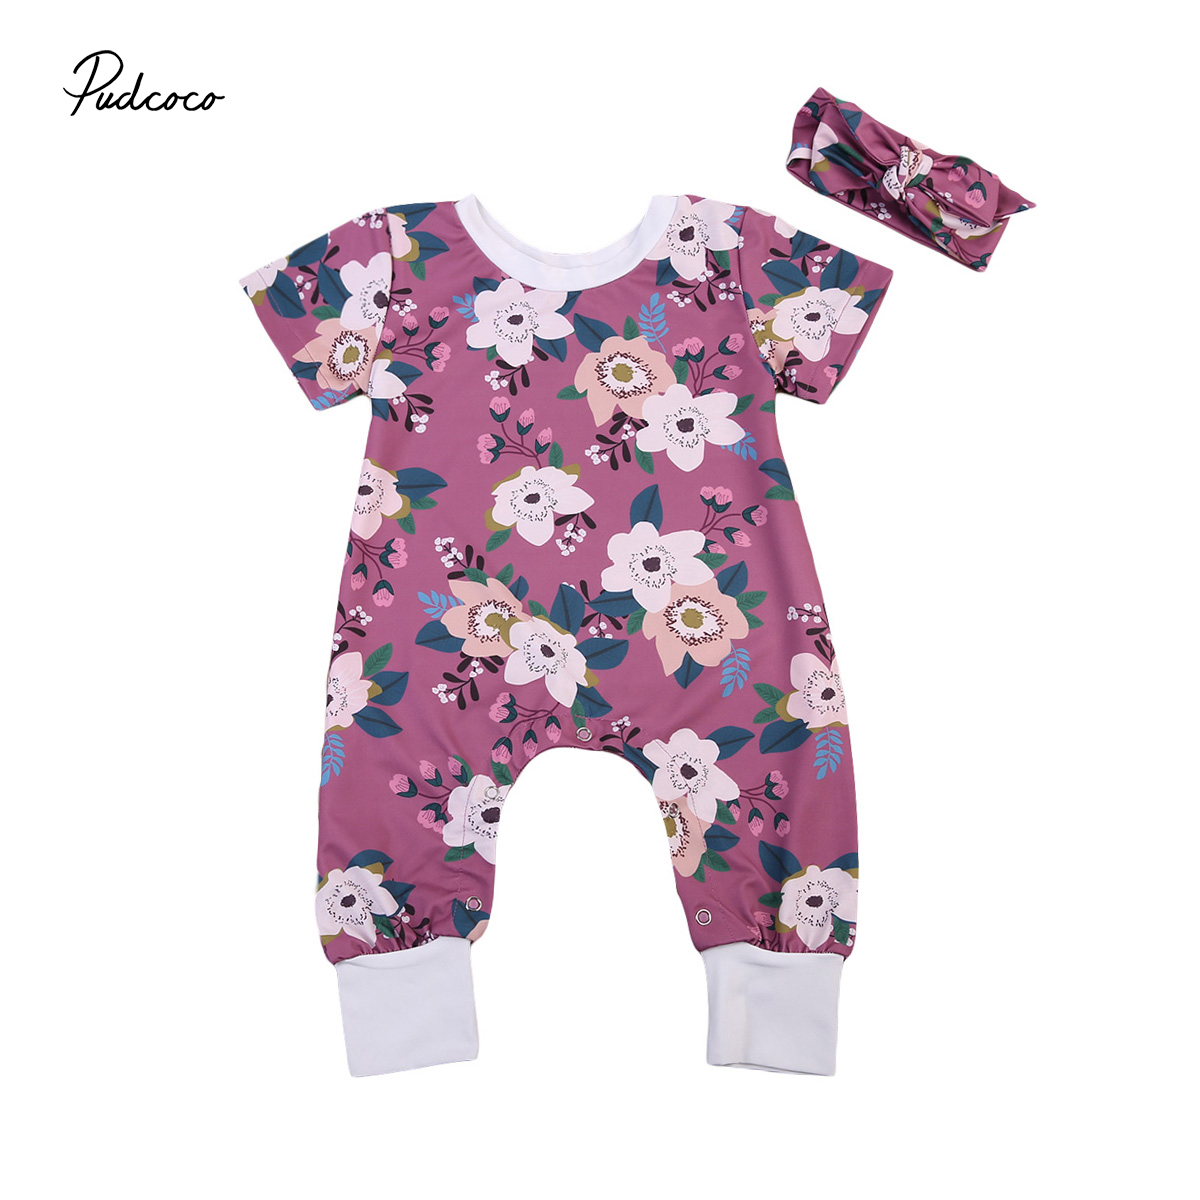 Pudcoco Cute Kids Baby Girls Short Sleeve Floral Romper Headband Outfits Casual Baby Cotton Summer Jumpsuits